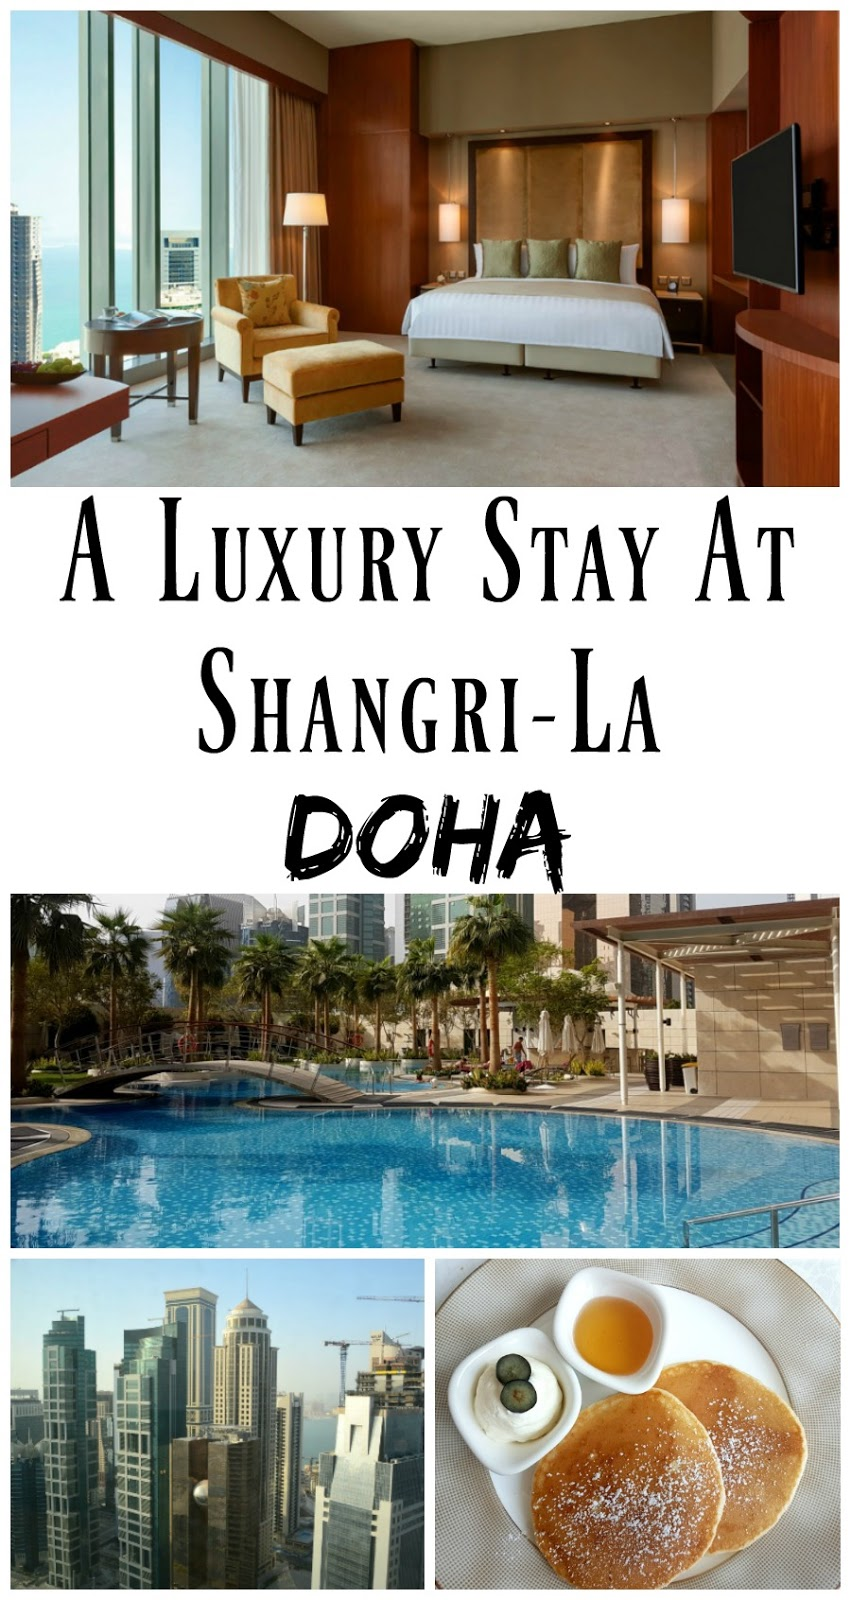 *Pin For Later* A review of the five star Shangri-La Hotel in Doha, Qatar. A stunning luxury hotel right in the heart of the city of Doha, the Shangri-La is the perfect base to explore.